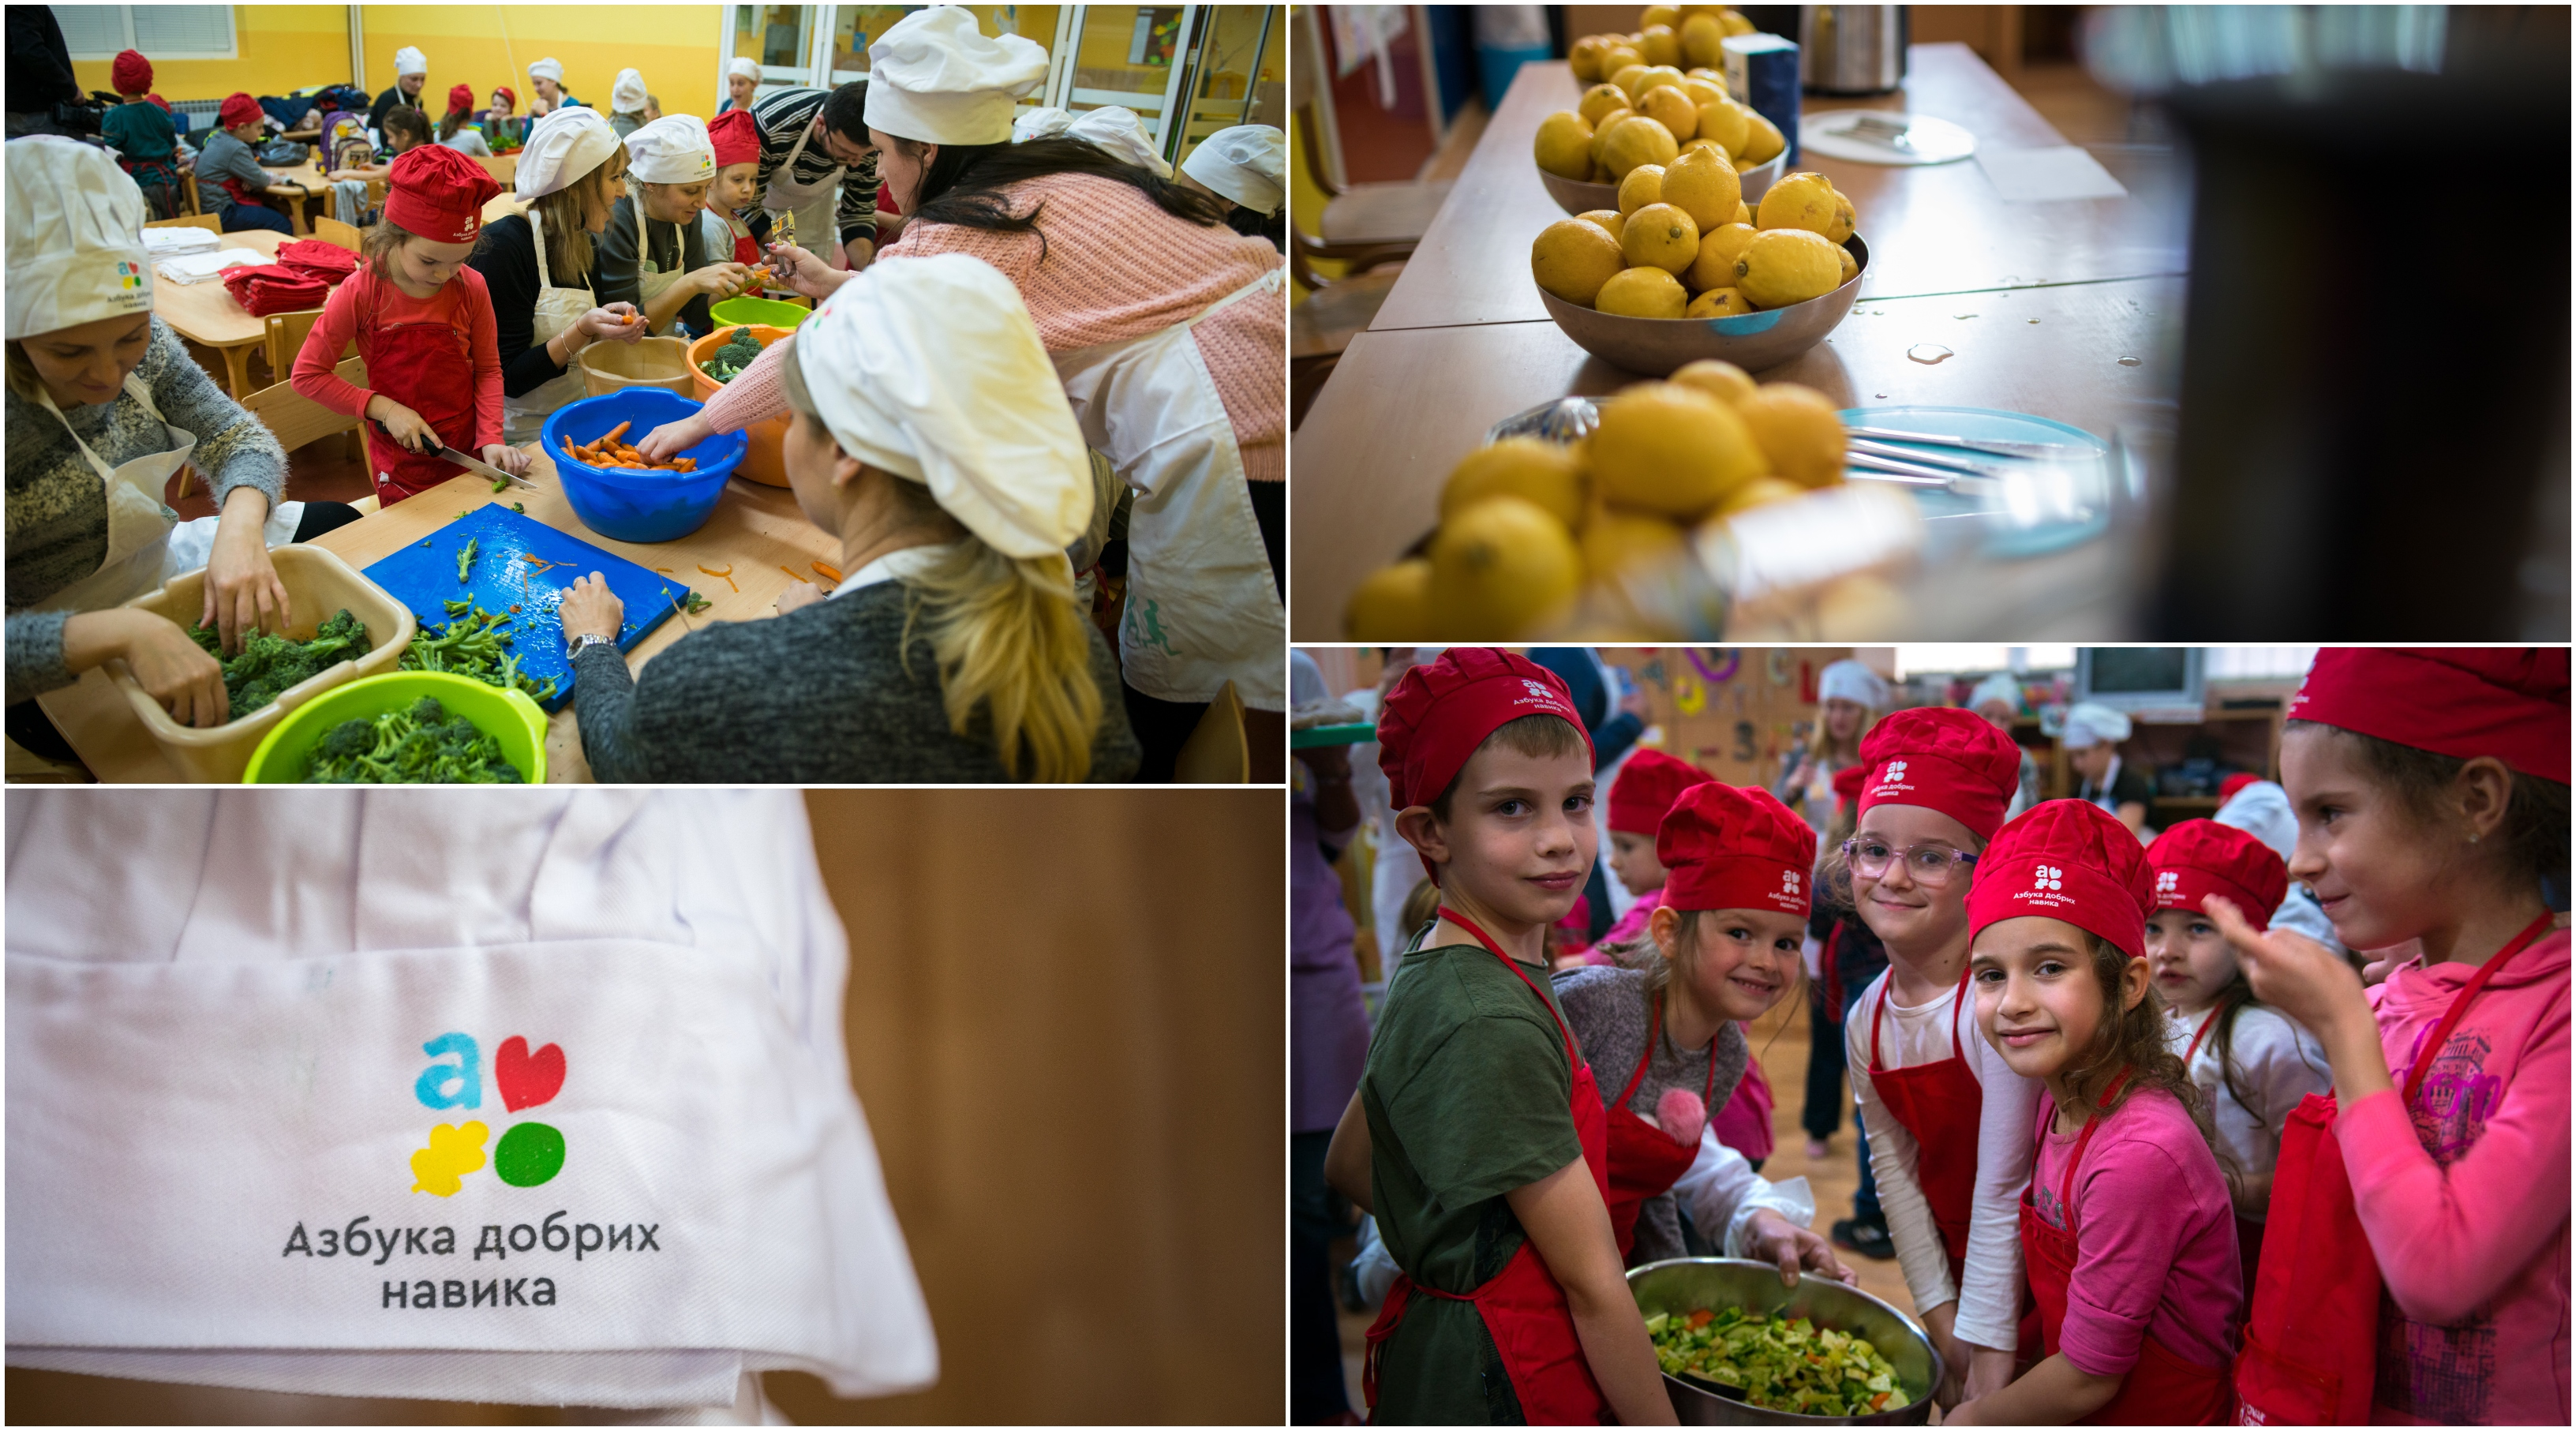 """Good Gardens"" are established according to the principles of organic production, so that the fruits are eventually used during culinary workshops that we organize for parents, educators and children"